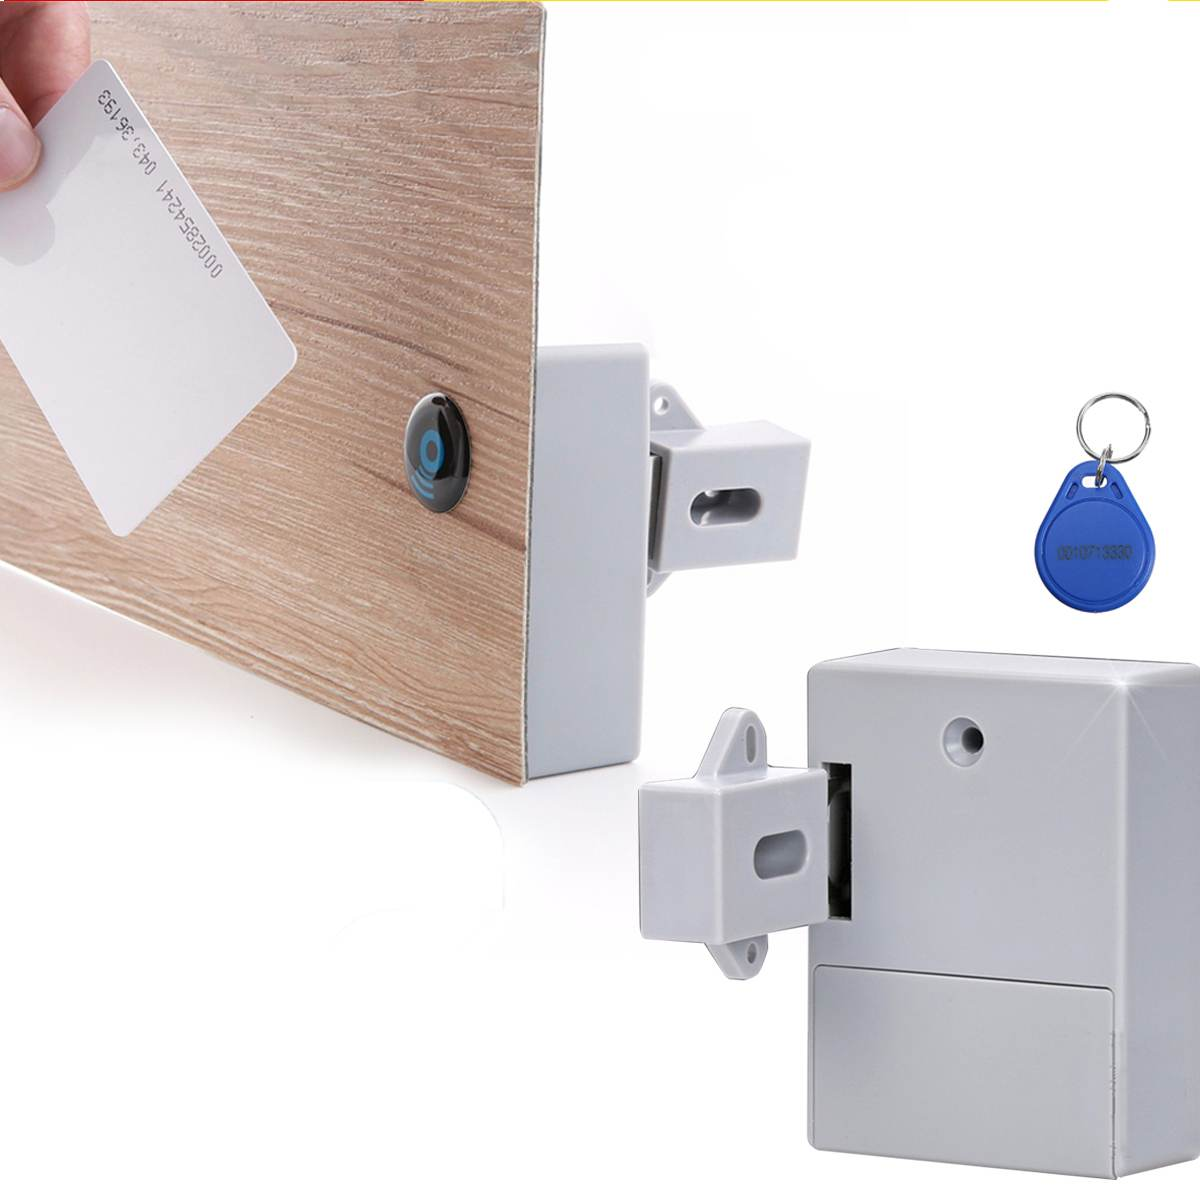 Invisible RFID Electronic Cabinet Smart Lock IC Card Sensor RFID Drawer Locks